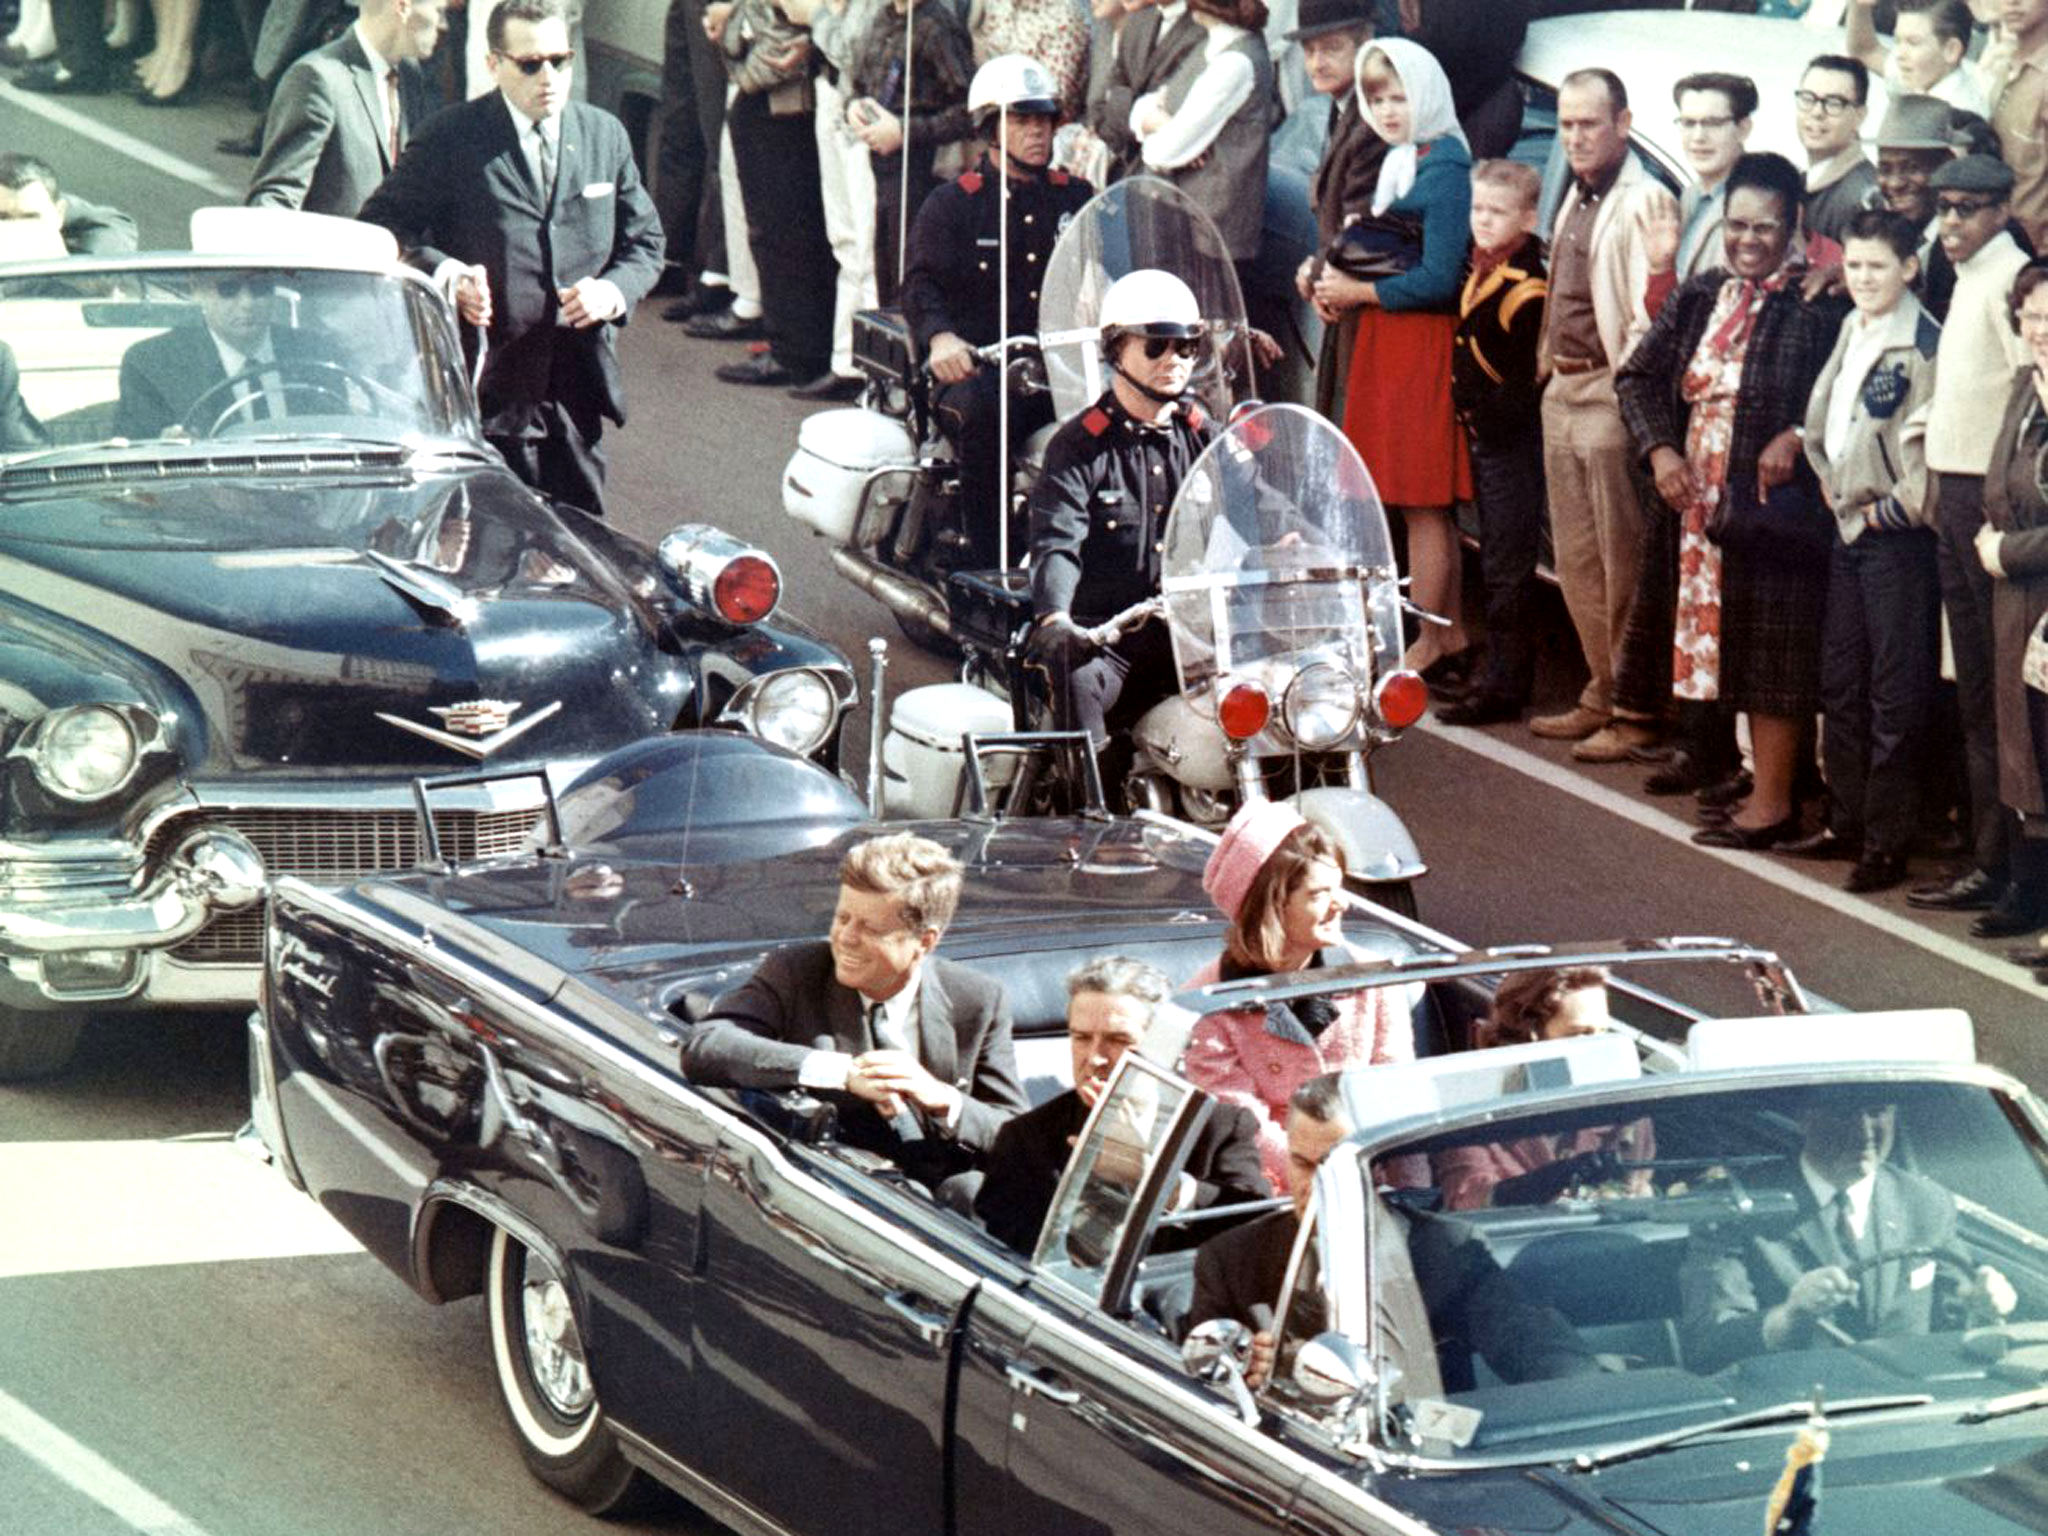 John F. Kennedy motorcade minutes before assassination